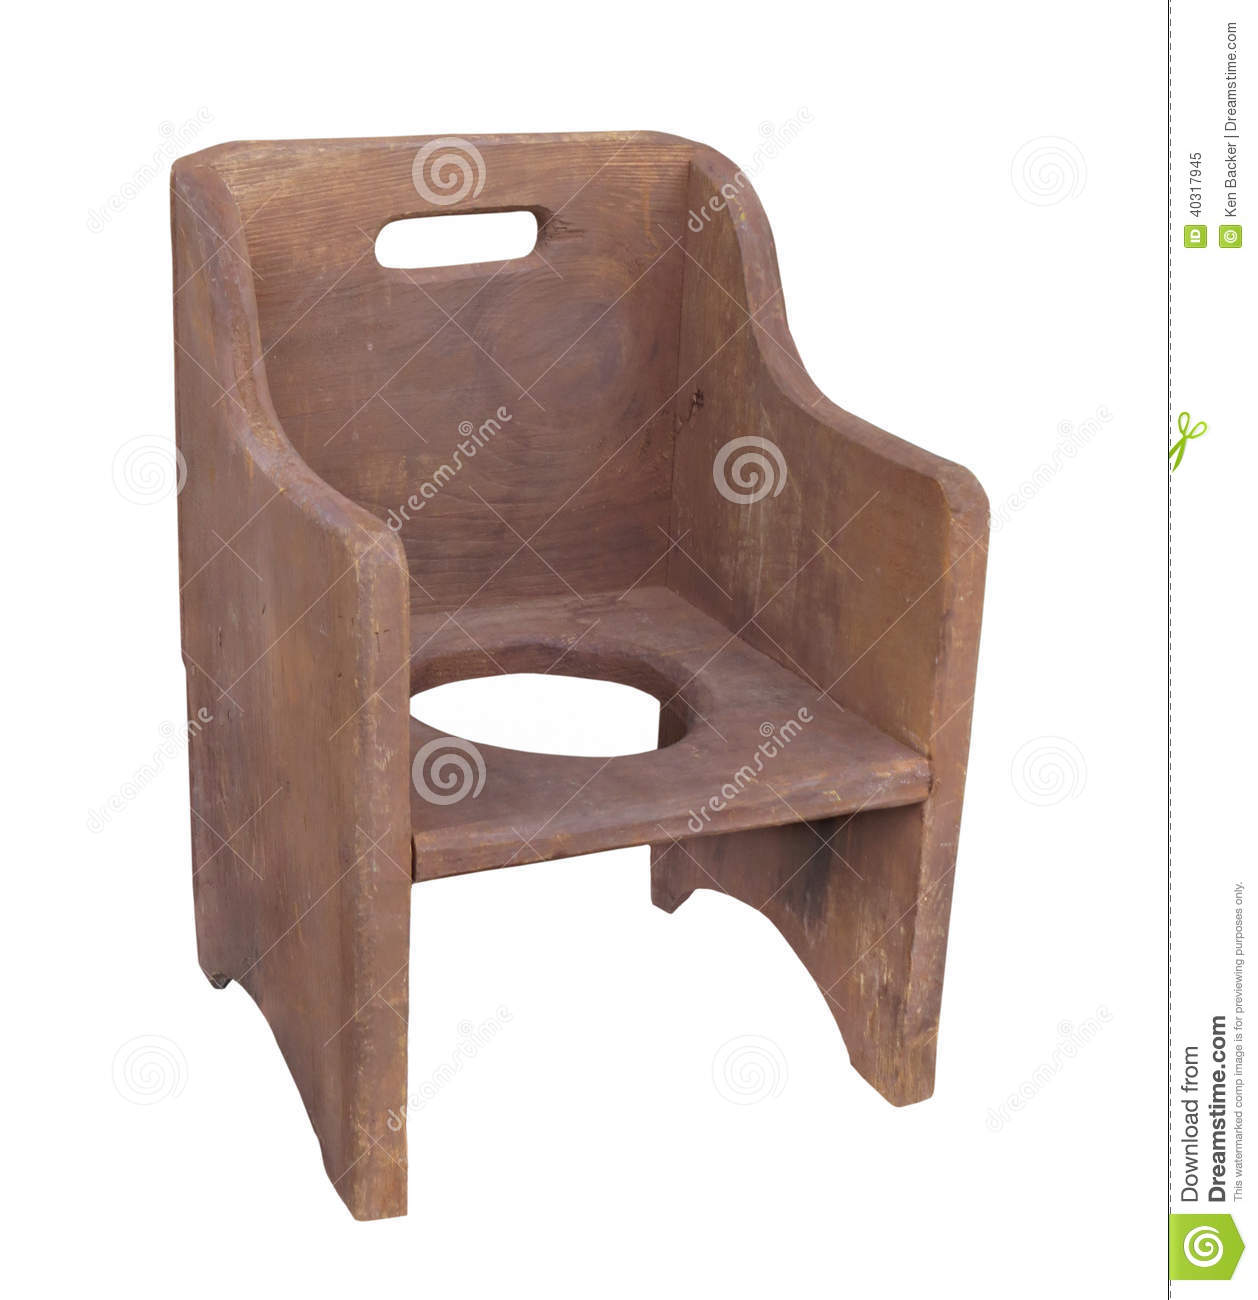 Old Wooden Child Potty Chair Isolated